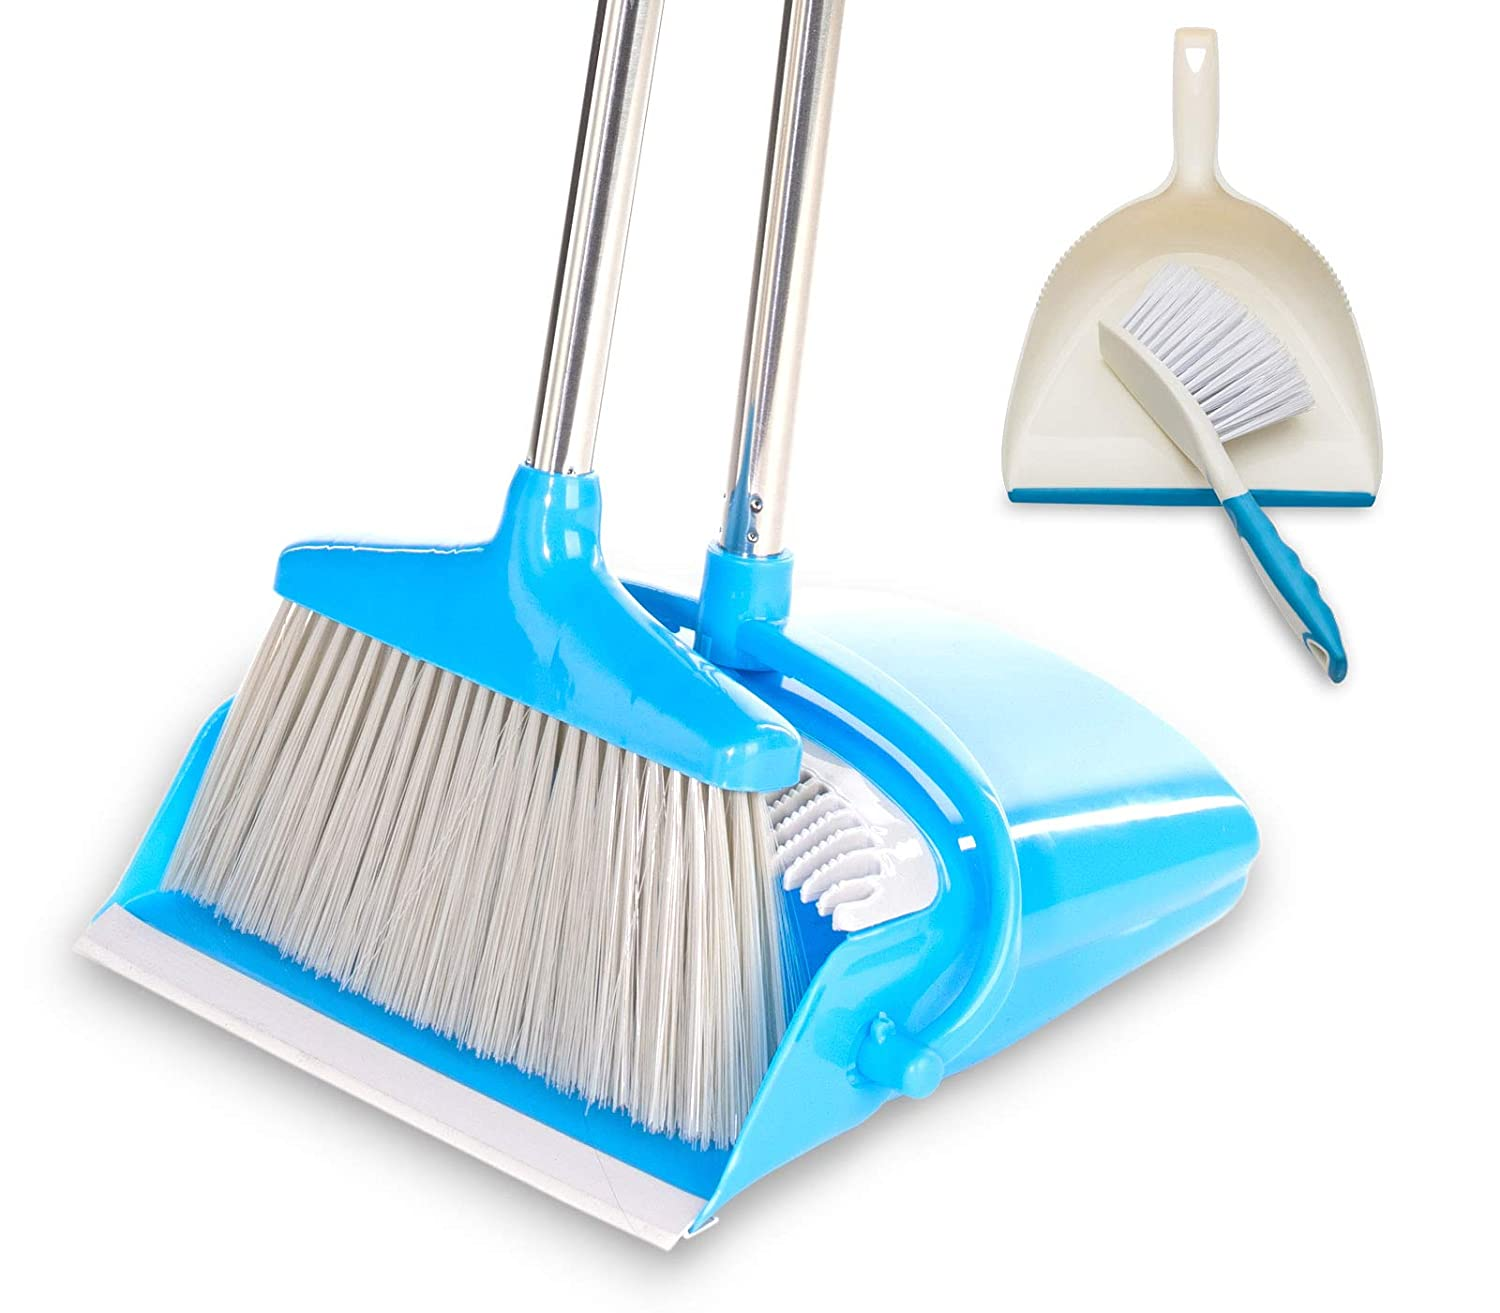 BristleComb Broom and Dustpan Set - Variable Handle Length Broom and Dustpan - Includes: Hand Brush and Dustpan Combo - Lightweight and Upright Stand for Cleaning Your Kitchen, Home, and Lobby (Blue)